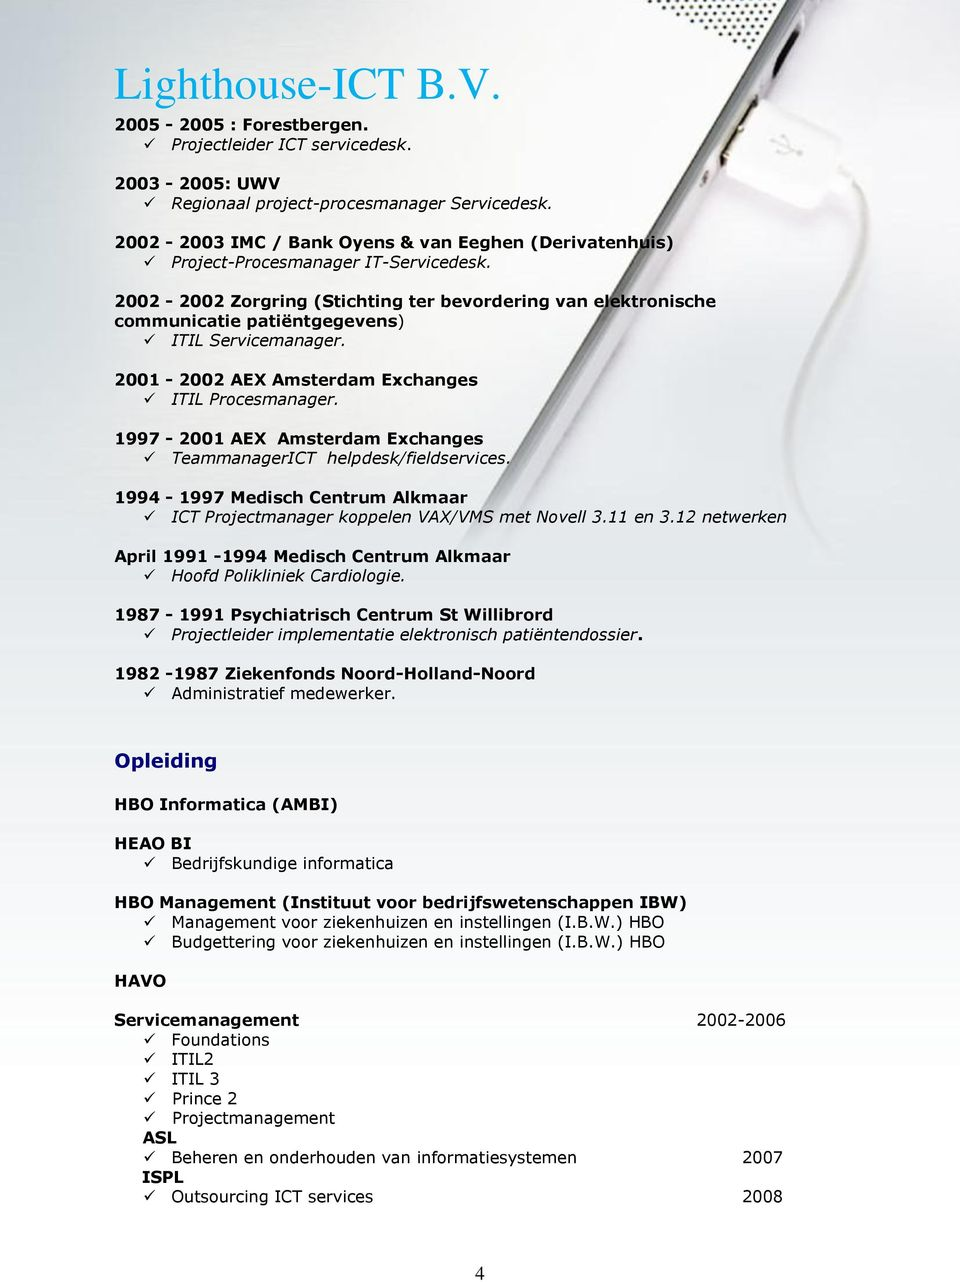 2002-2002 Zorgring (Stichting ter bevordering van elektronische communicatie patiëntgegevens) ITIL Servicemanager. 2001-2002 AEX Amsterdam Exchanges ITIL Procesmanager.